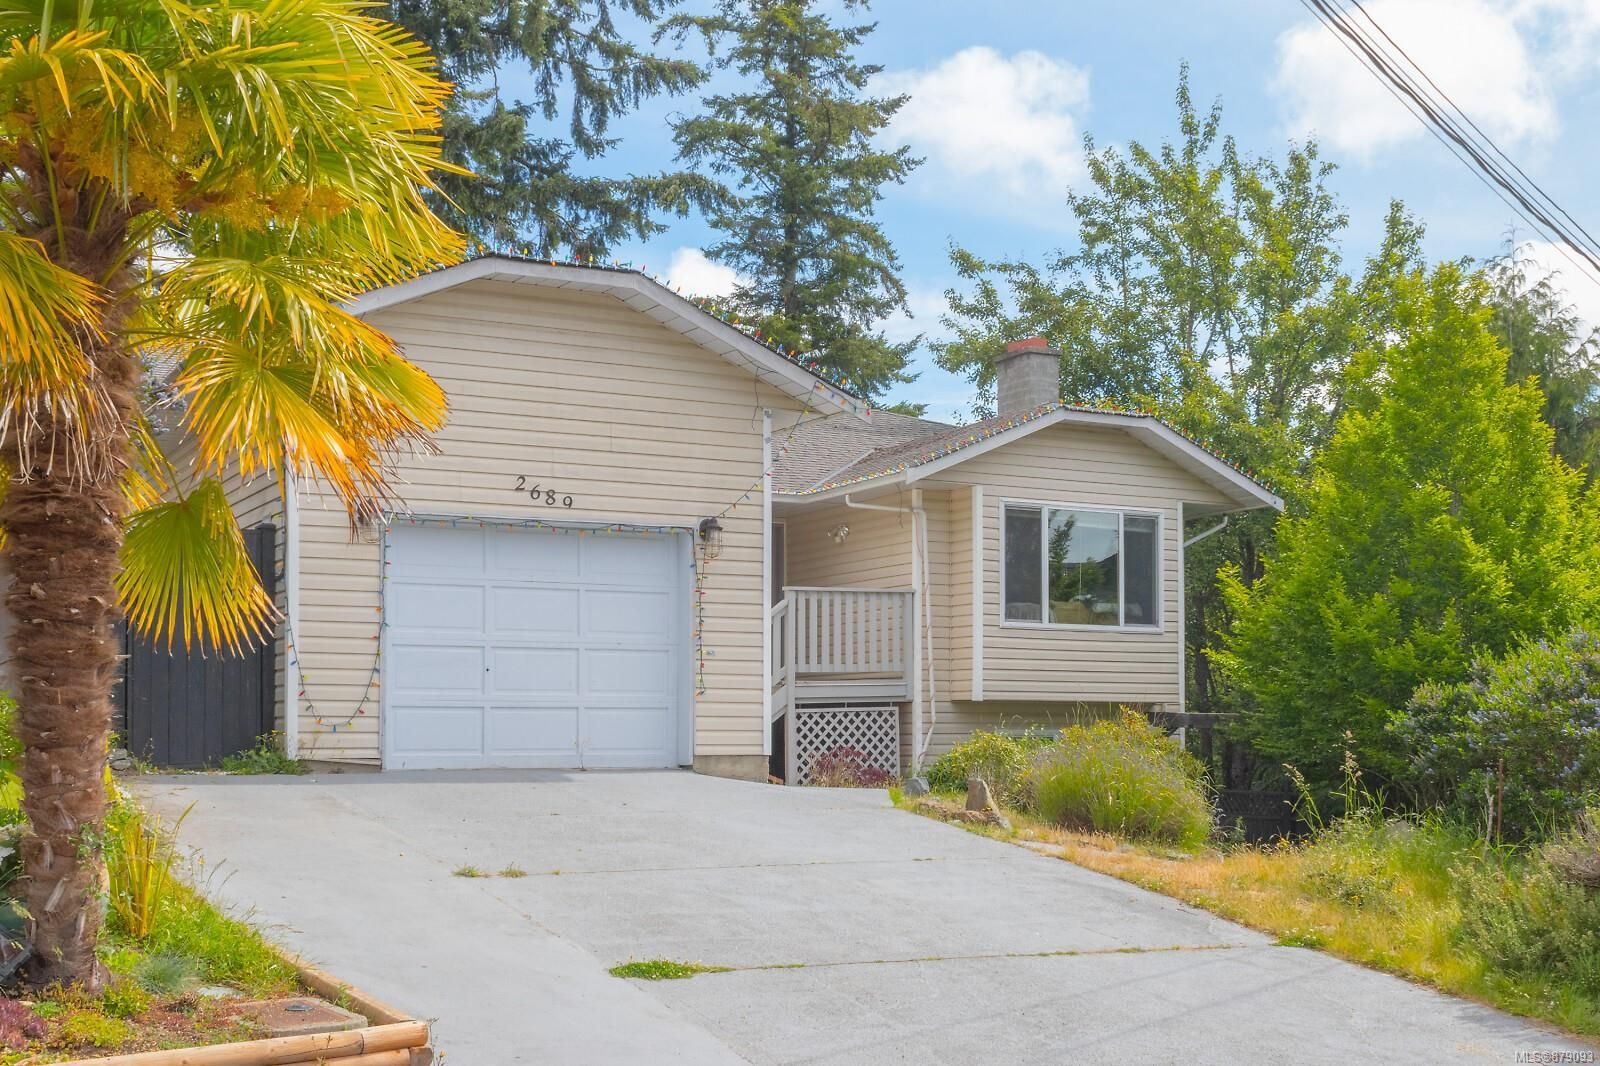 Main Photo: 2689 Myra Pl in : VR Six Mile House for sale (View Royal)  : MLS®# 879093